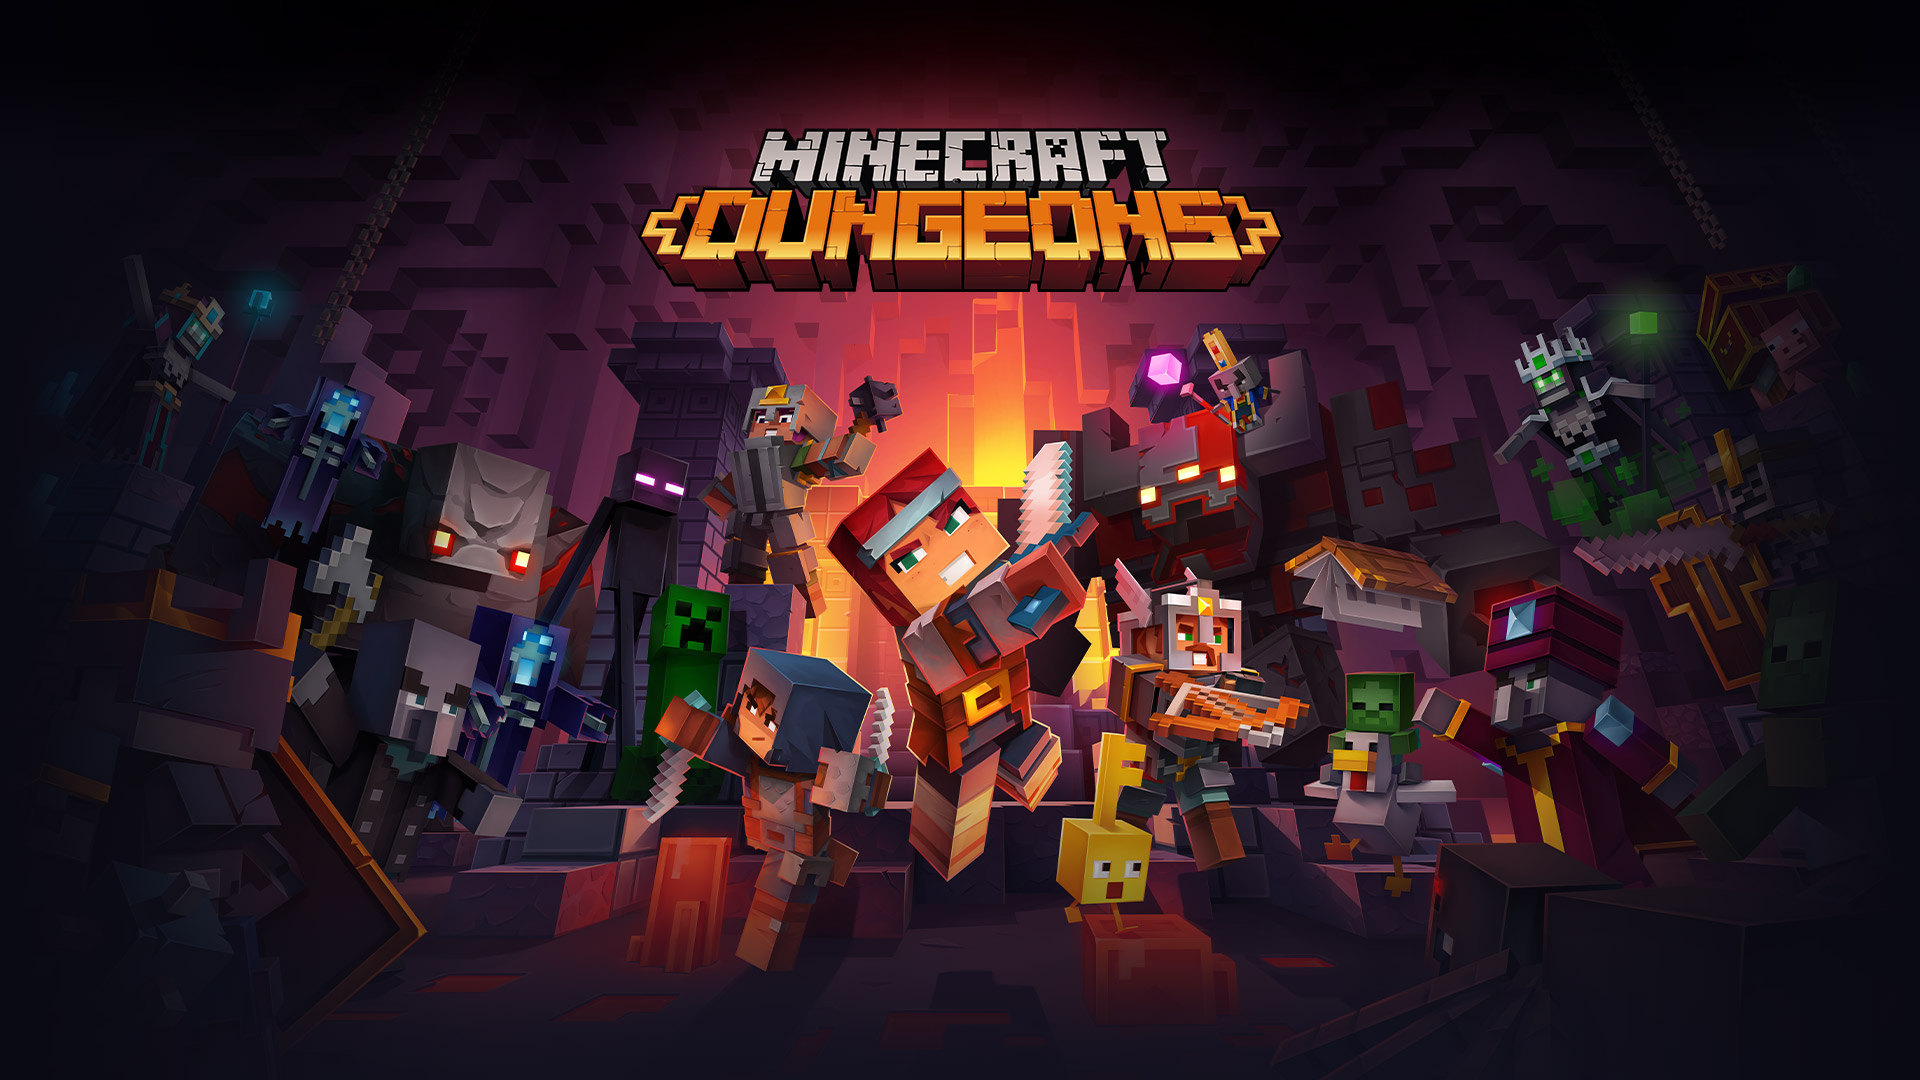 Minecraft Dungeons logo in front of all Minecraft characters fighting in a dungeon